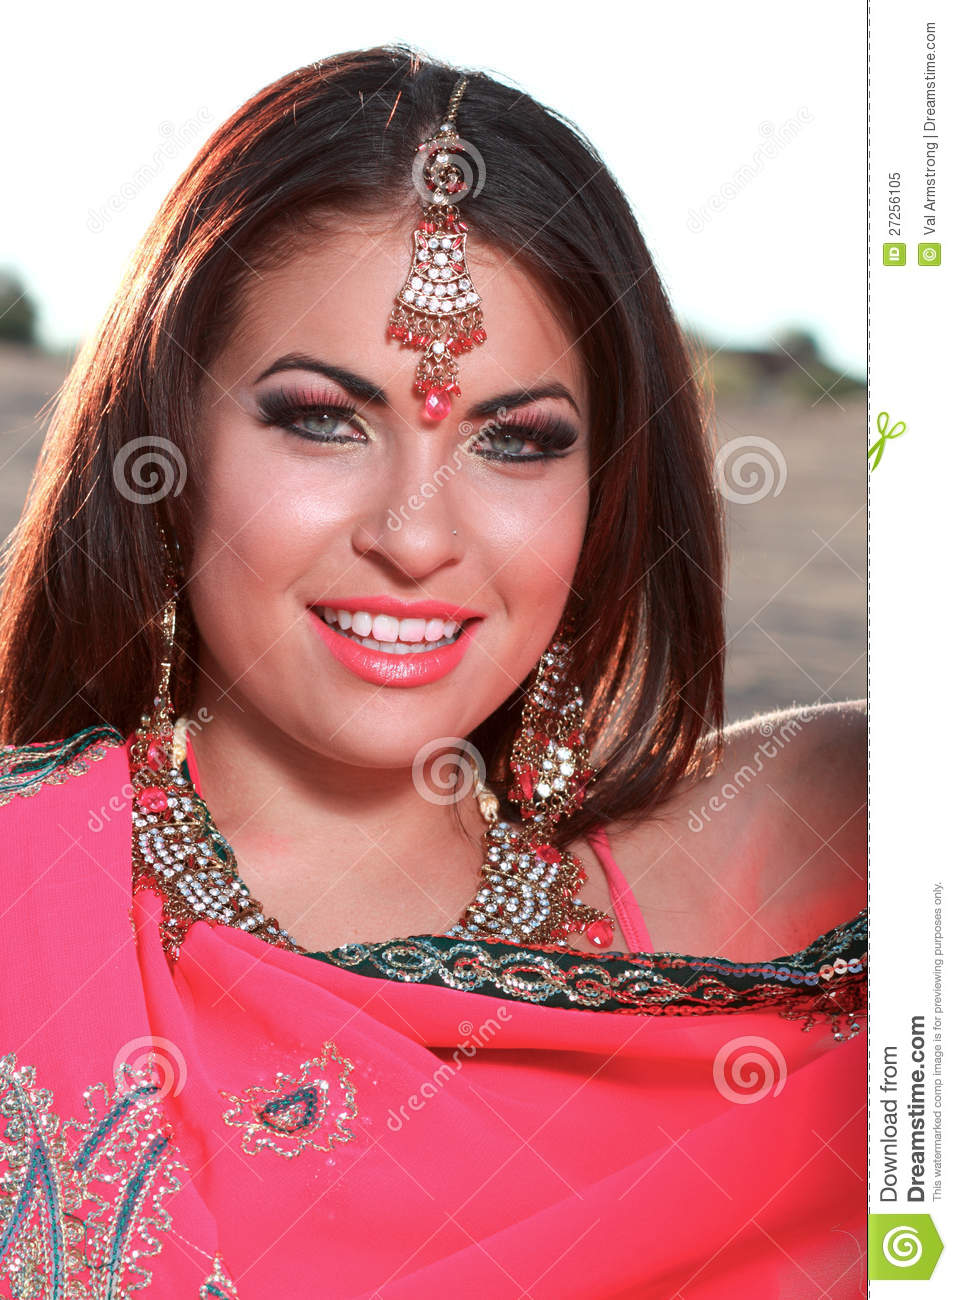 Beautiful Woman With Middle Eastern Makeup Stock Image ...